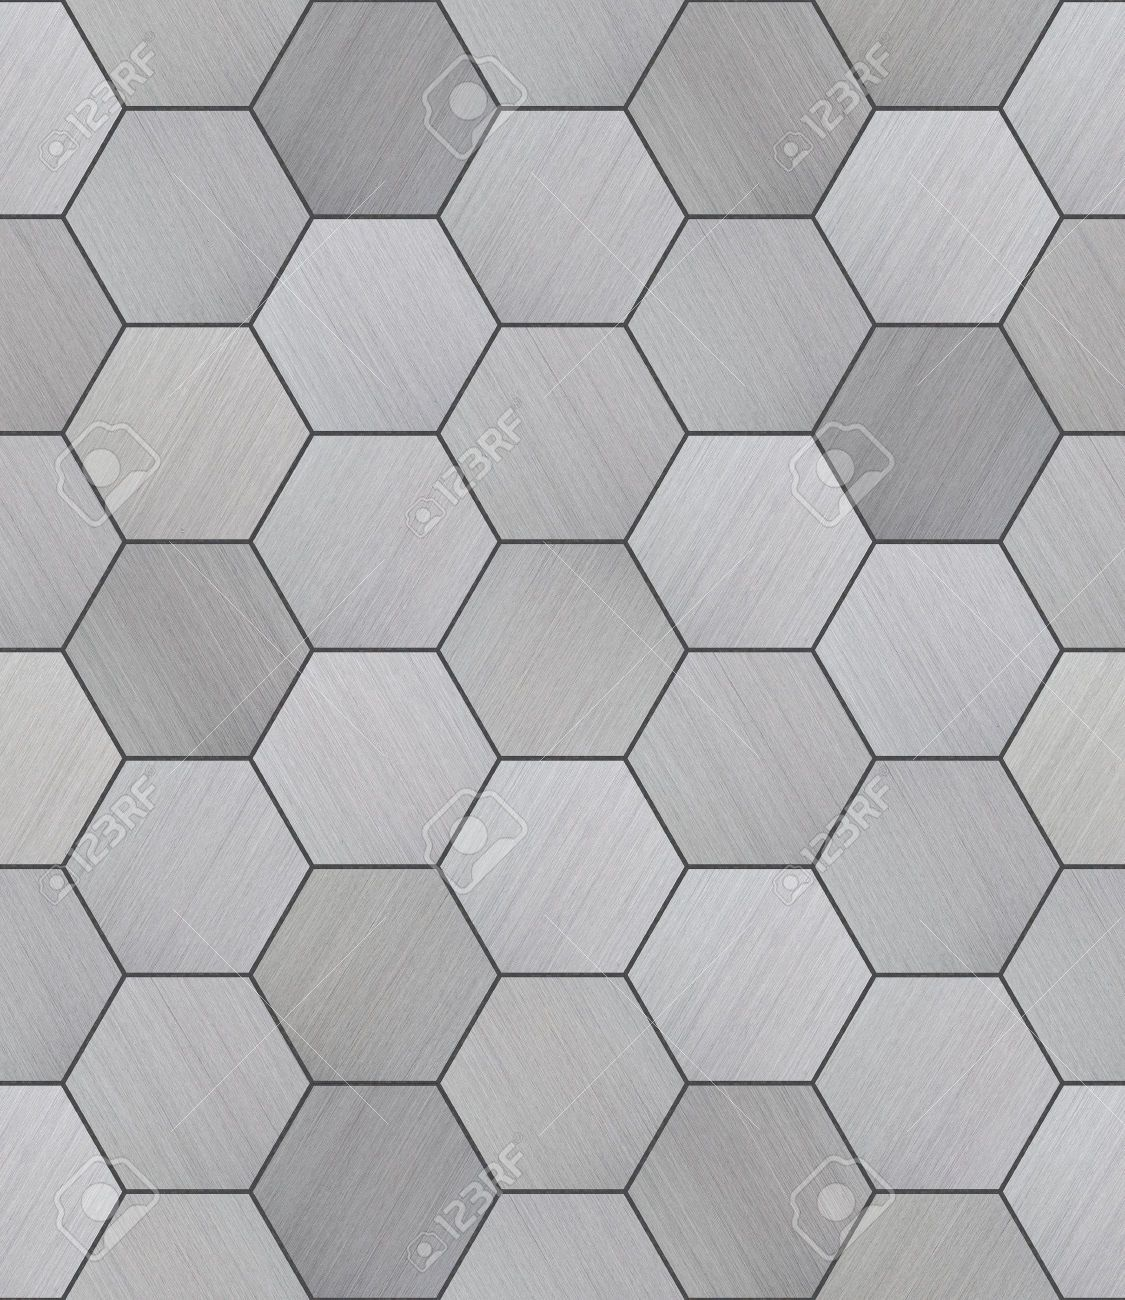 Tiled bathrooms gallery - 36643327 Hexagonal Aluminum Tiled Seamless Texture Stock